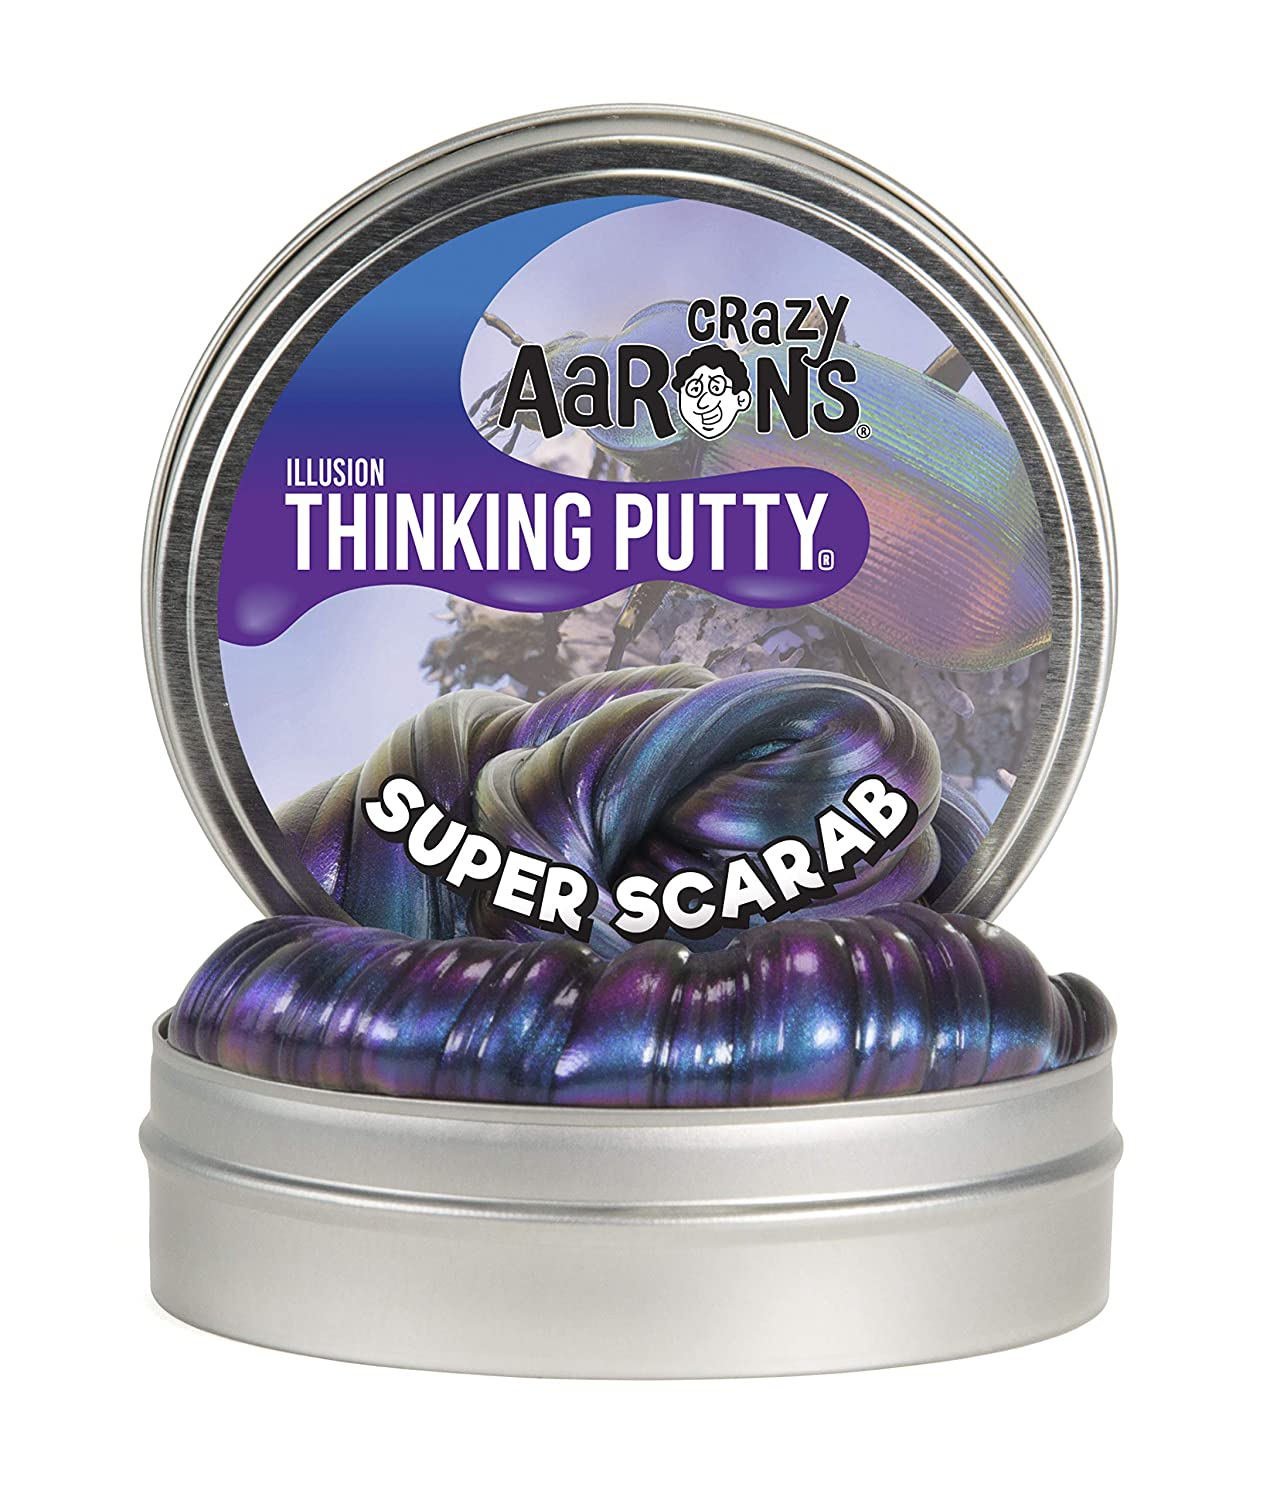 "Crazy Aaron's Thinking Putty 4"" Tin - Super Illusions Super Scarab - Multi-Color Putty, Soft Texture - Never Dries Out"